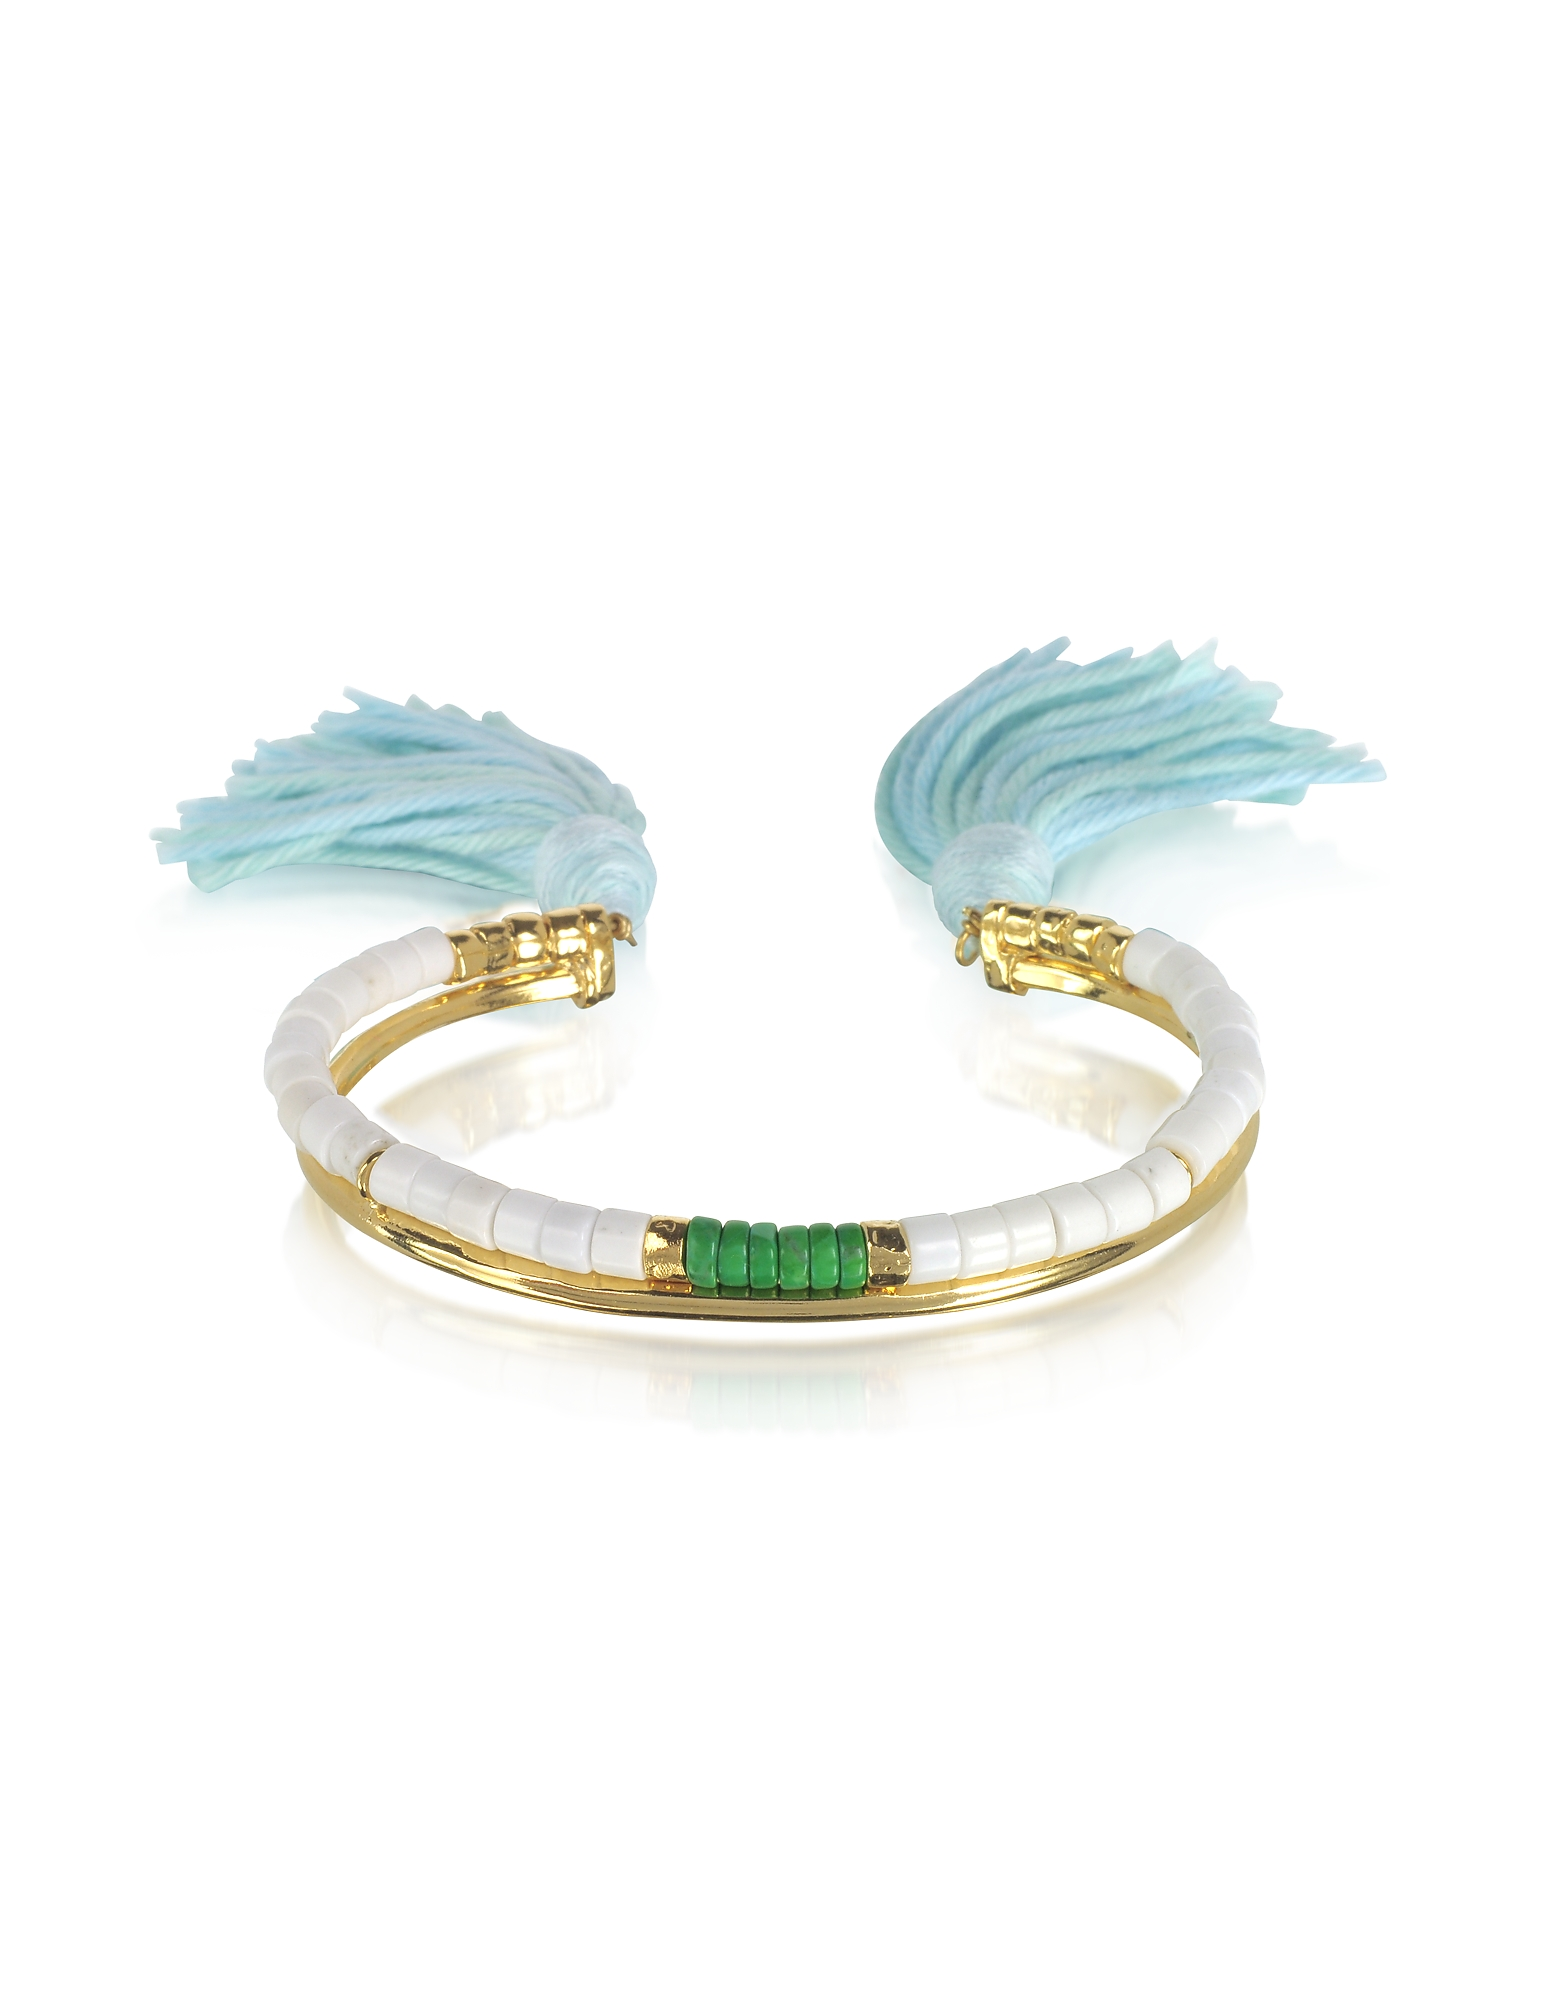 Aurelie Bidermann Bracelets, 18K Gold-Plated & White Bamboo and Green Jaspe Beads Sioux Bracelet w/L